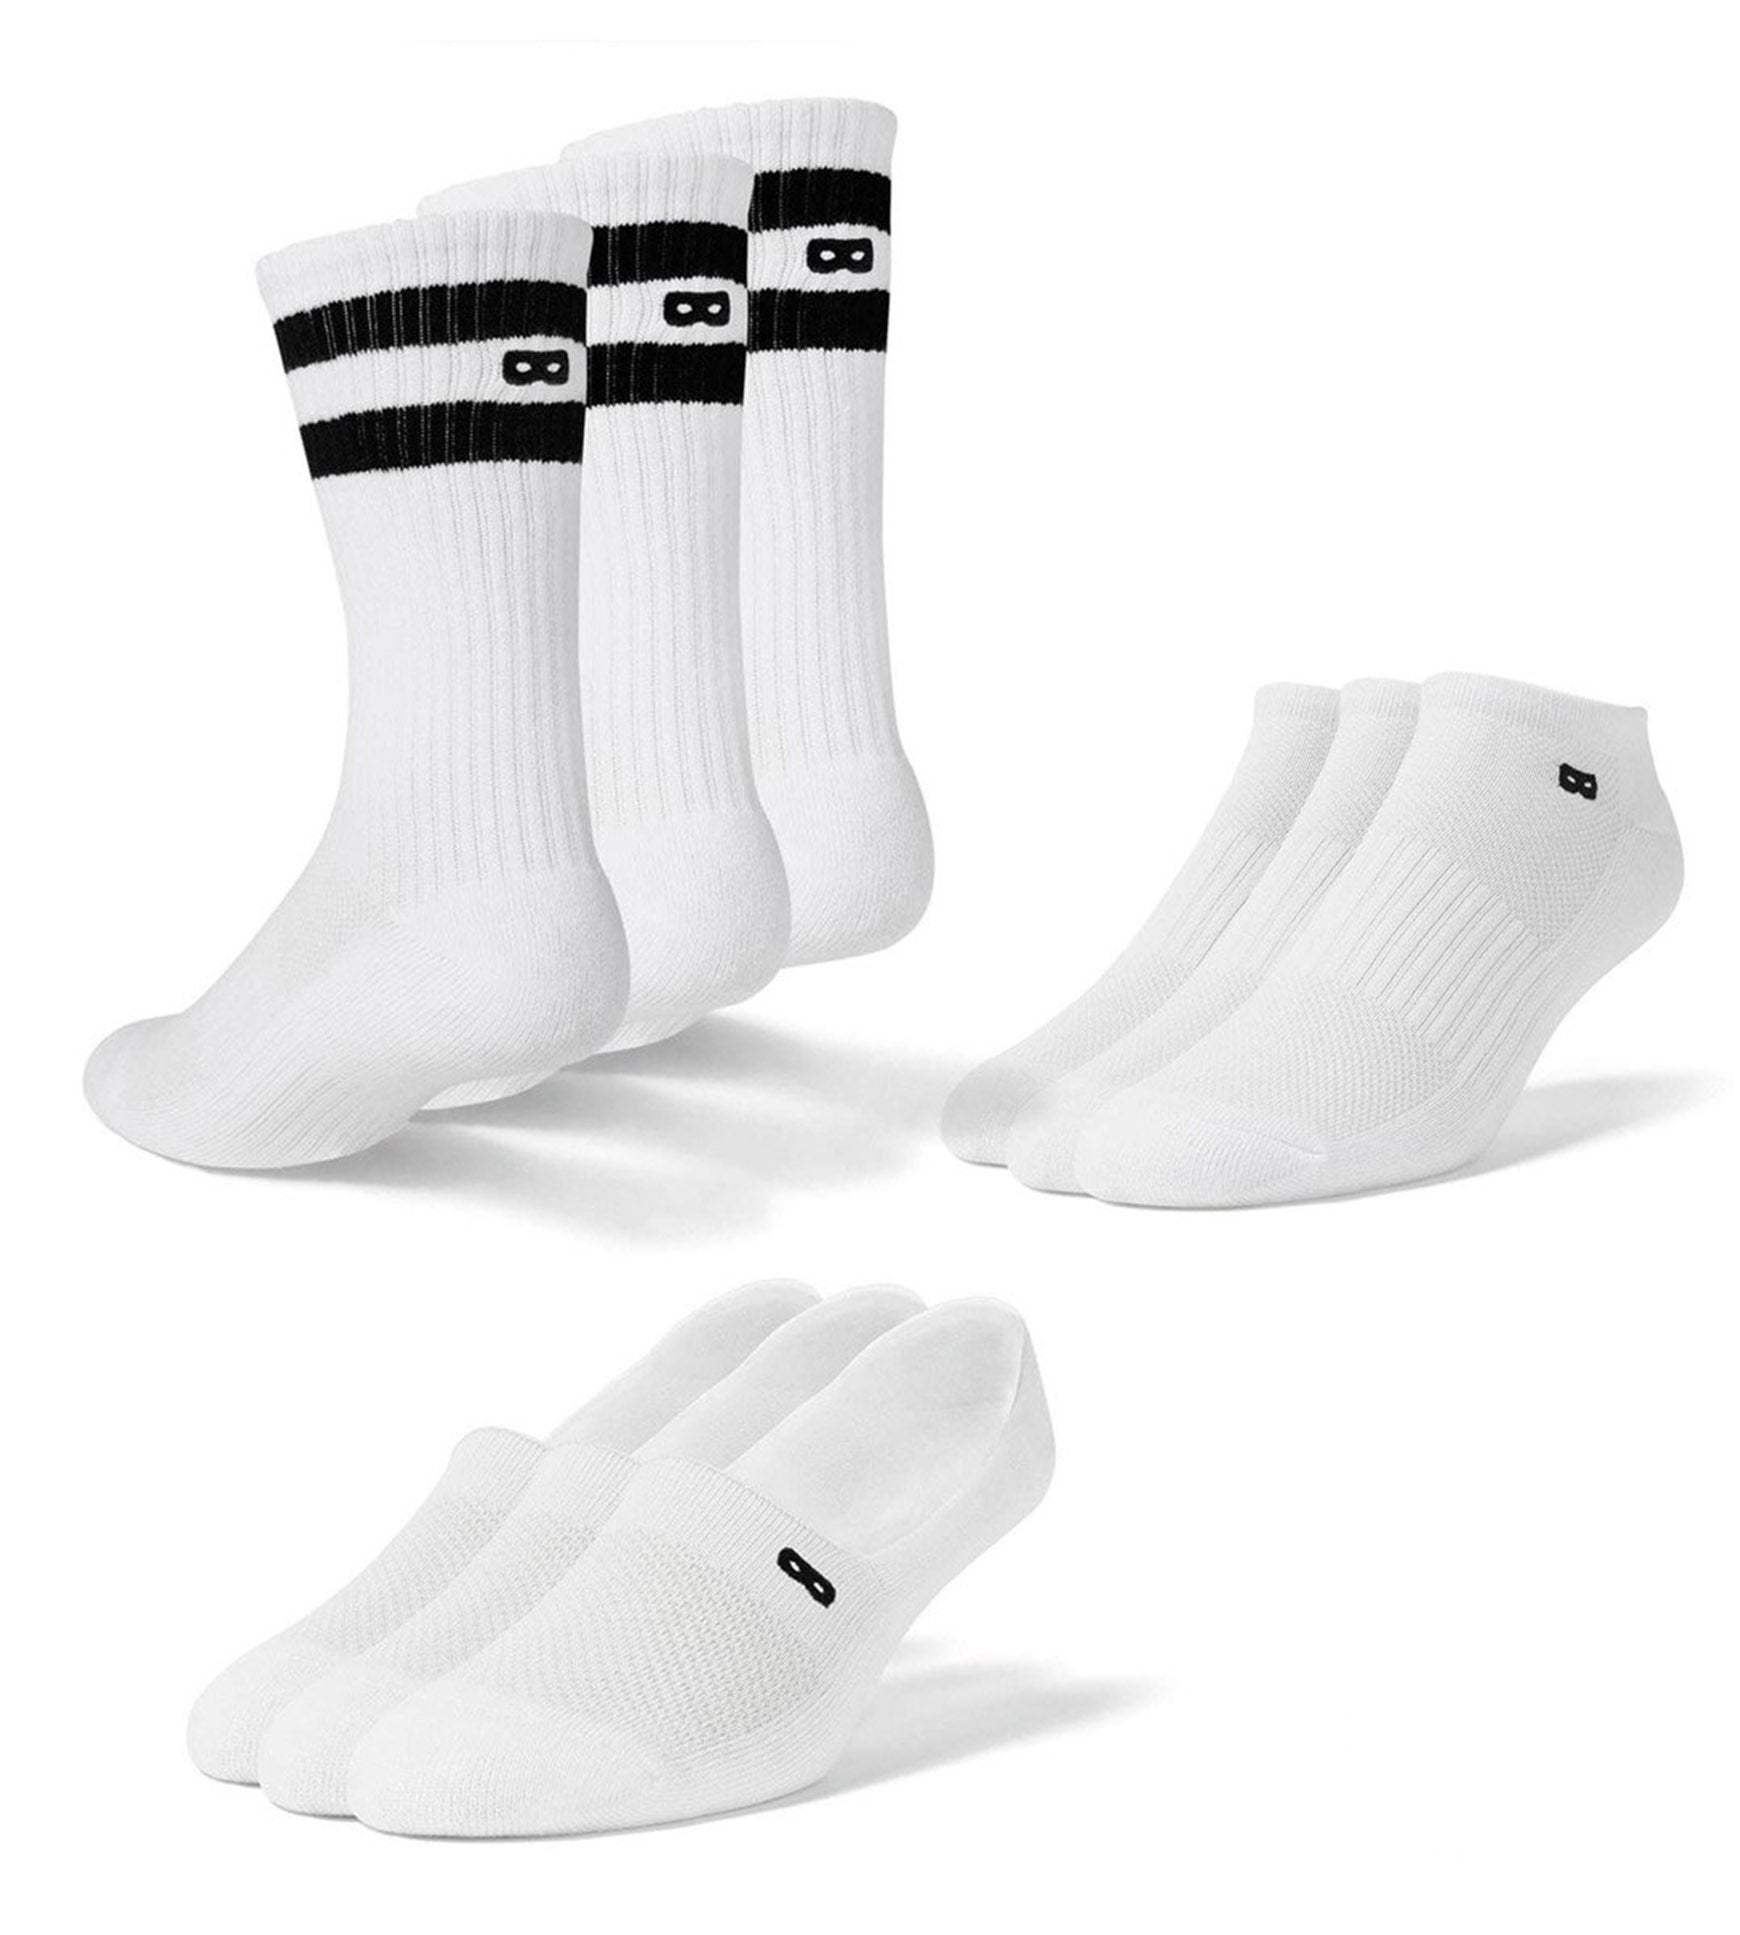 Women's Great Whiteout Socks 9 Pack